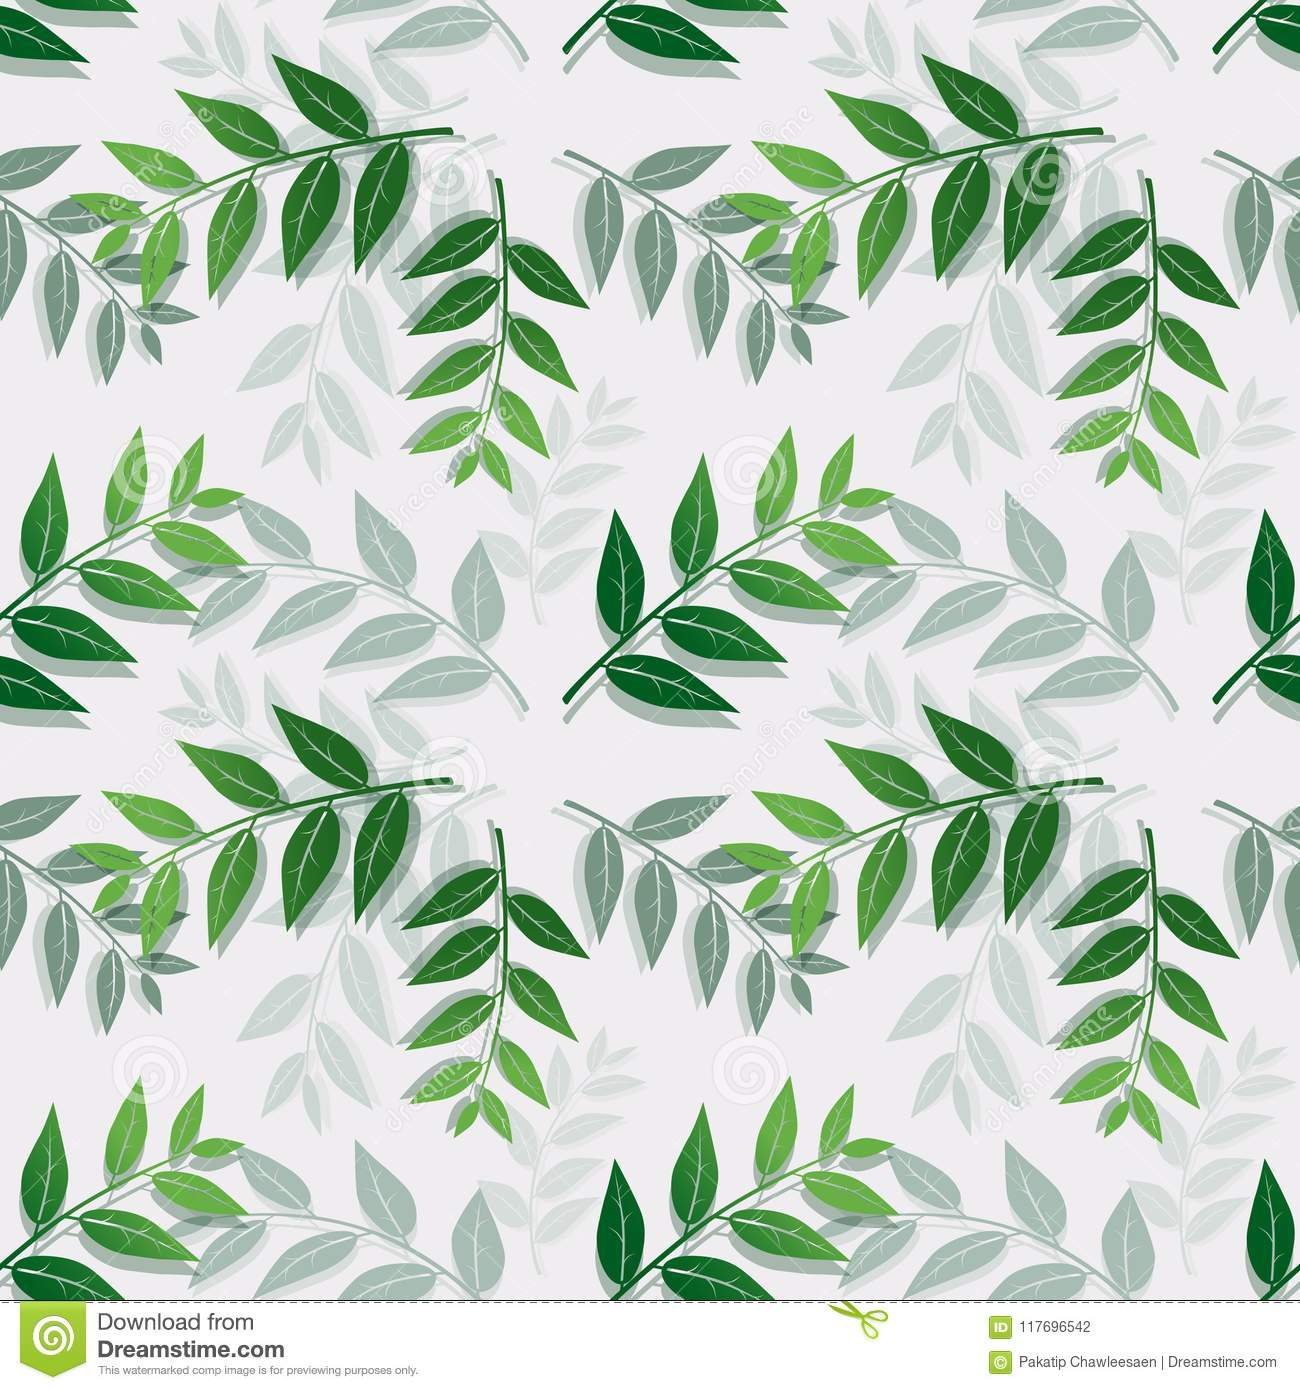 Tropical leaves isolate on white background,Seamless repeat pattern for textile,fabric,cover,print or wrapping paper